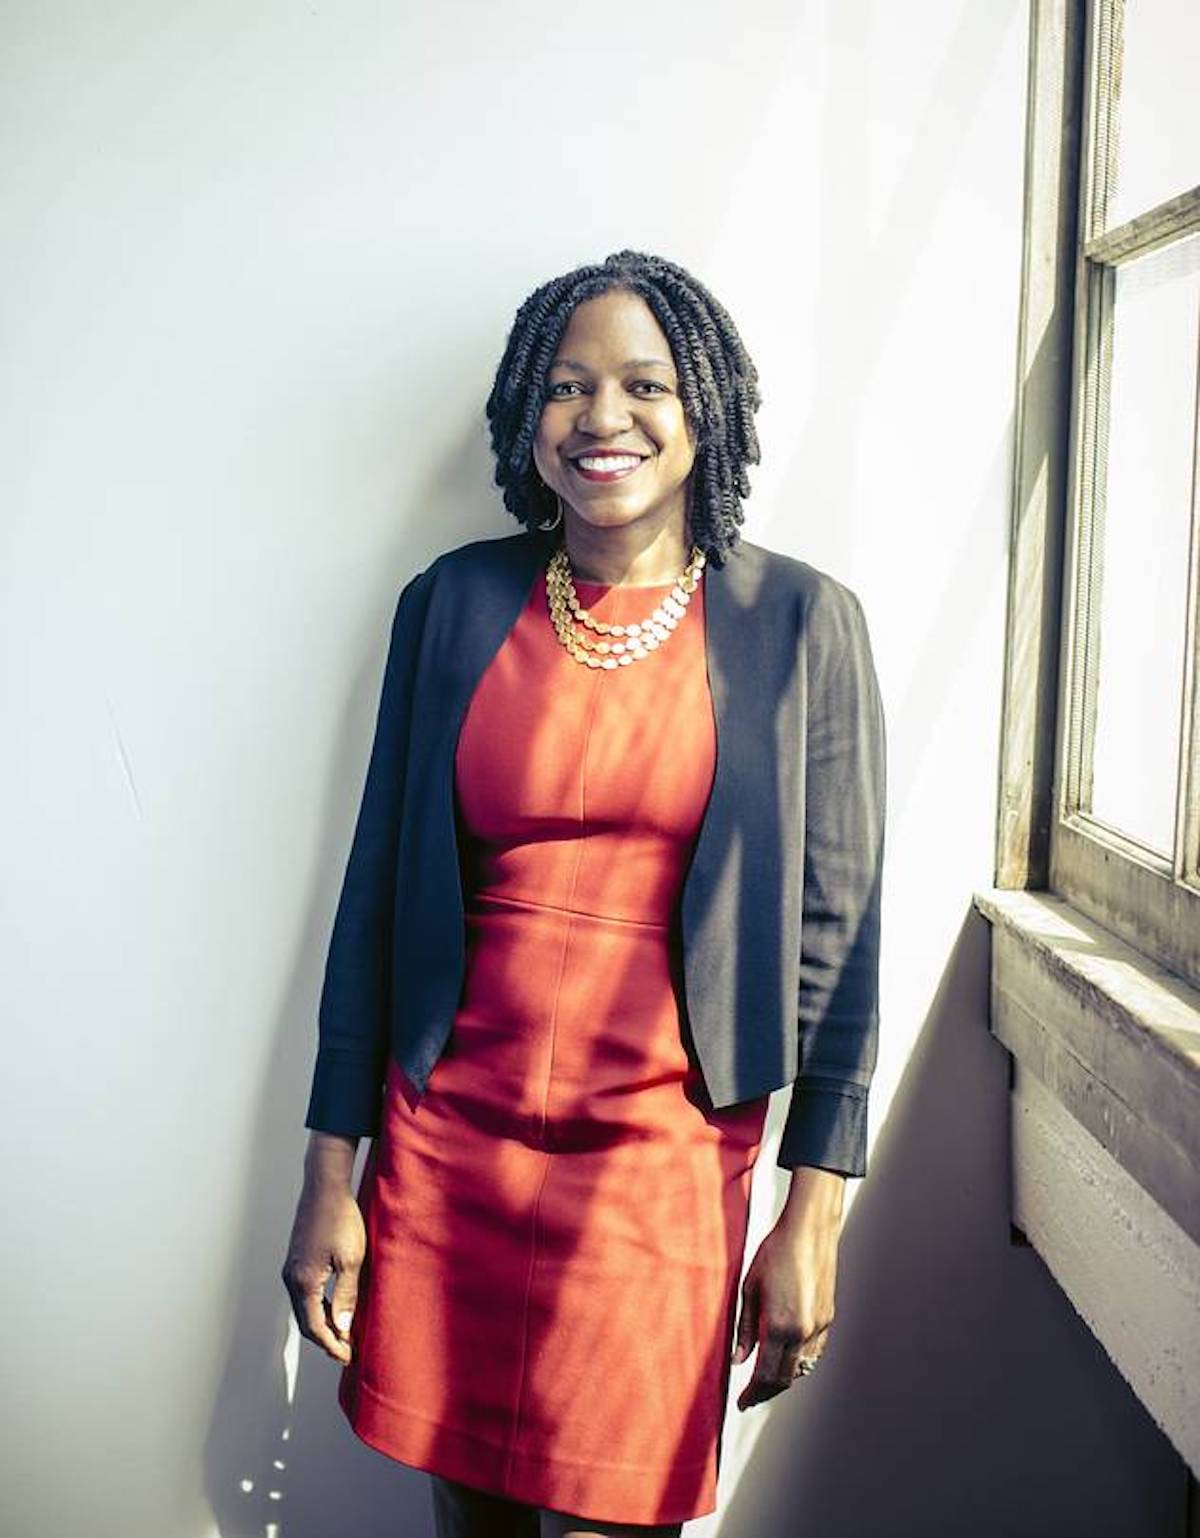 Stacy Brown-Philpot, African American Professionals, Black Silicon Valley, African Americans in Tech, Blacks in Tech, KOLUMN Magazine, KOLUMN, KINDR'D Magazine, KINDR'D